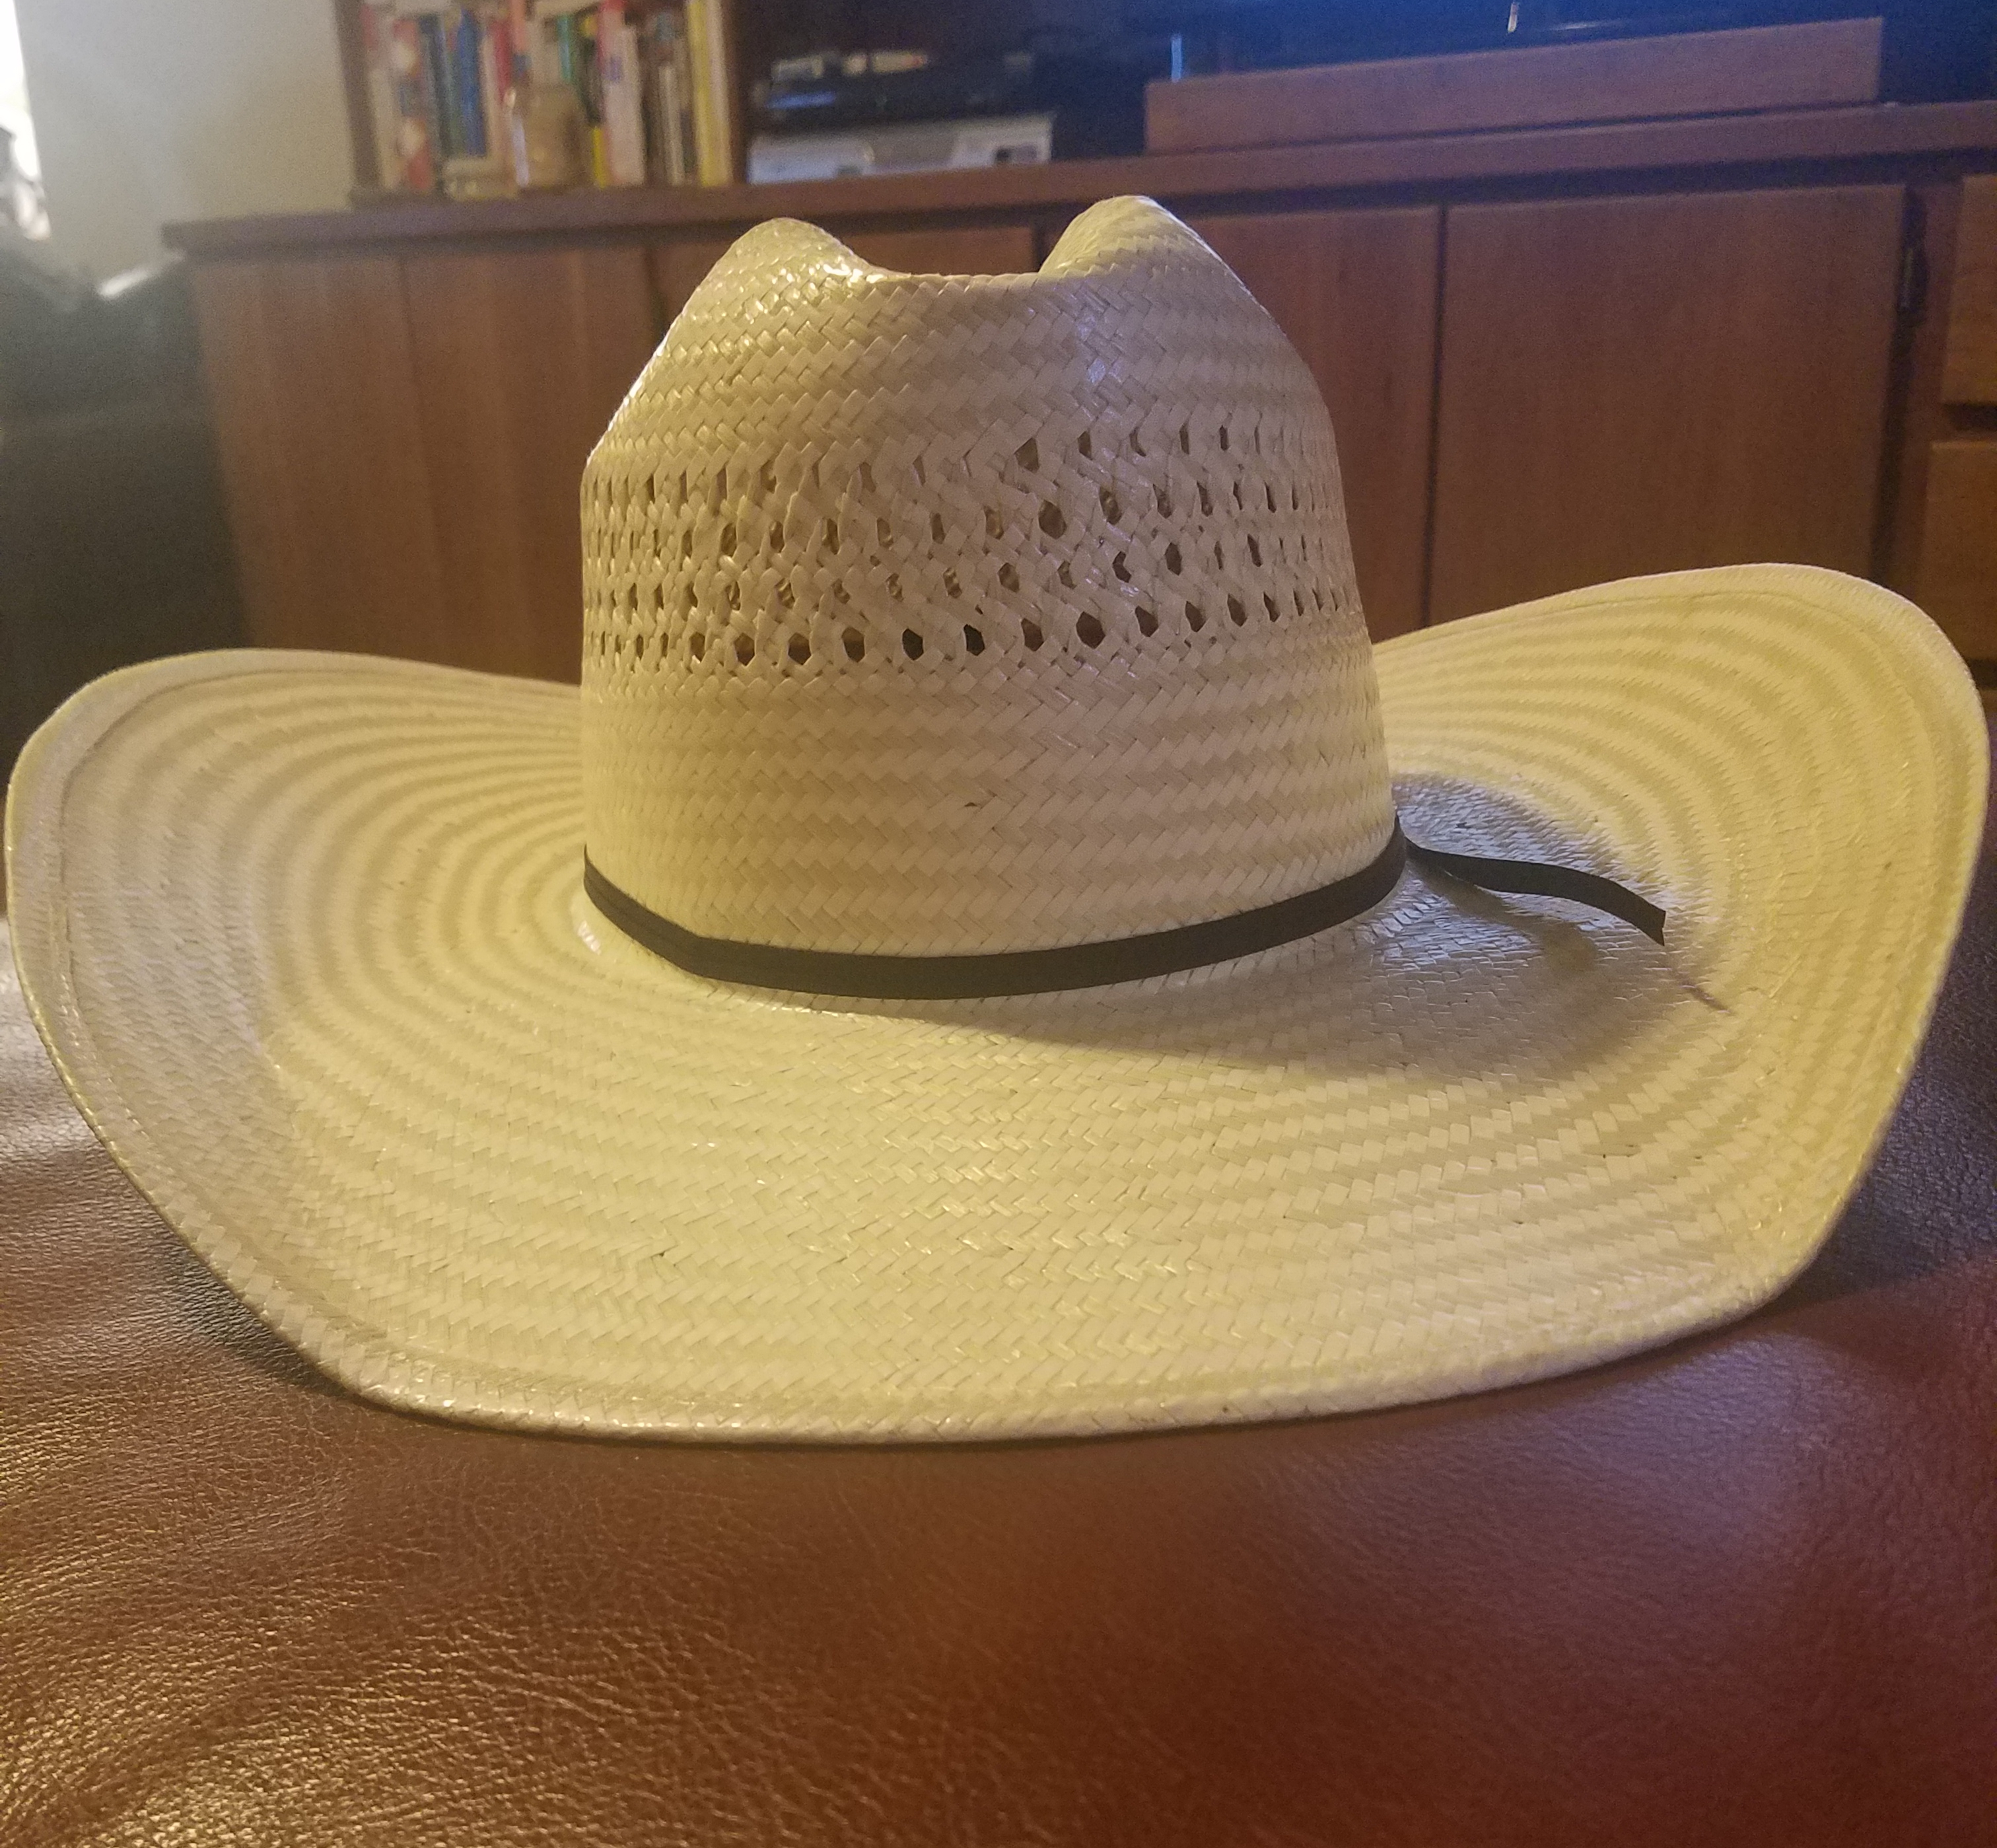 brand new American Hat Company 7 5/8 straw cowboy hat